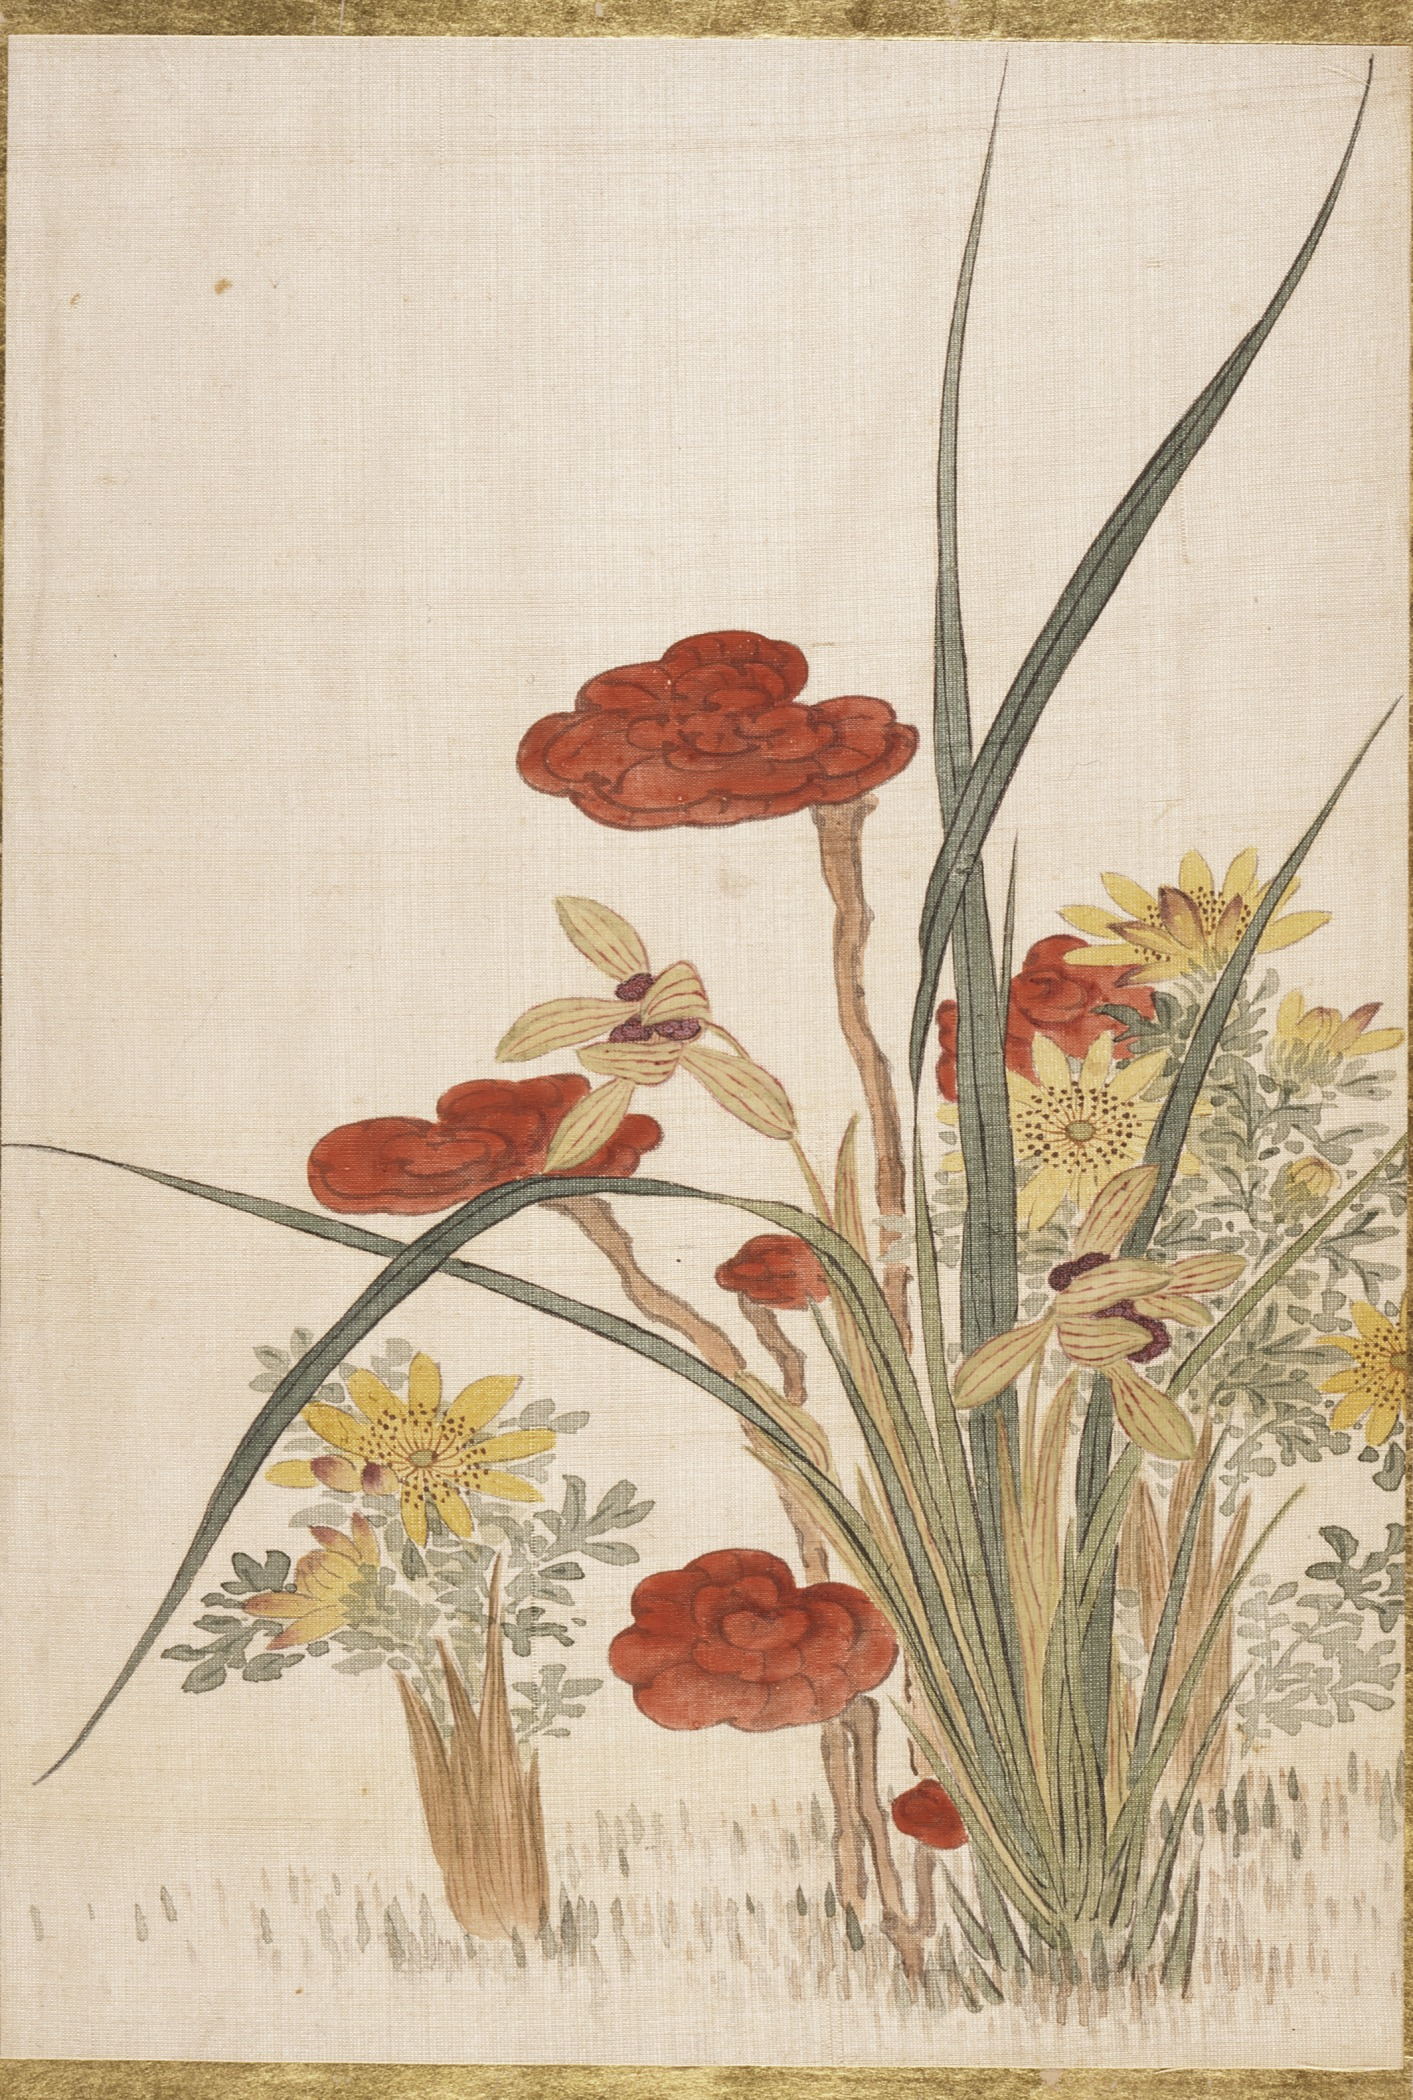 https://upload.wikimedia.org/wikipedia/commons/0/05/Pictures_of_Flowers_and_Birds_LACMA_M.85.99_%2822_of_25%29.jpg